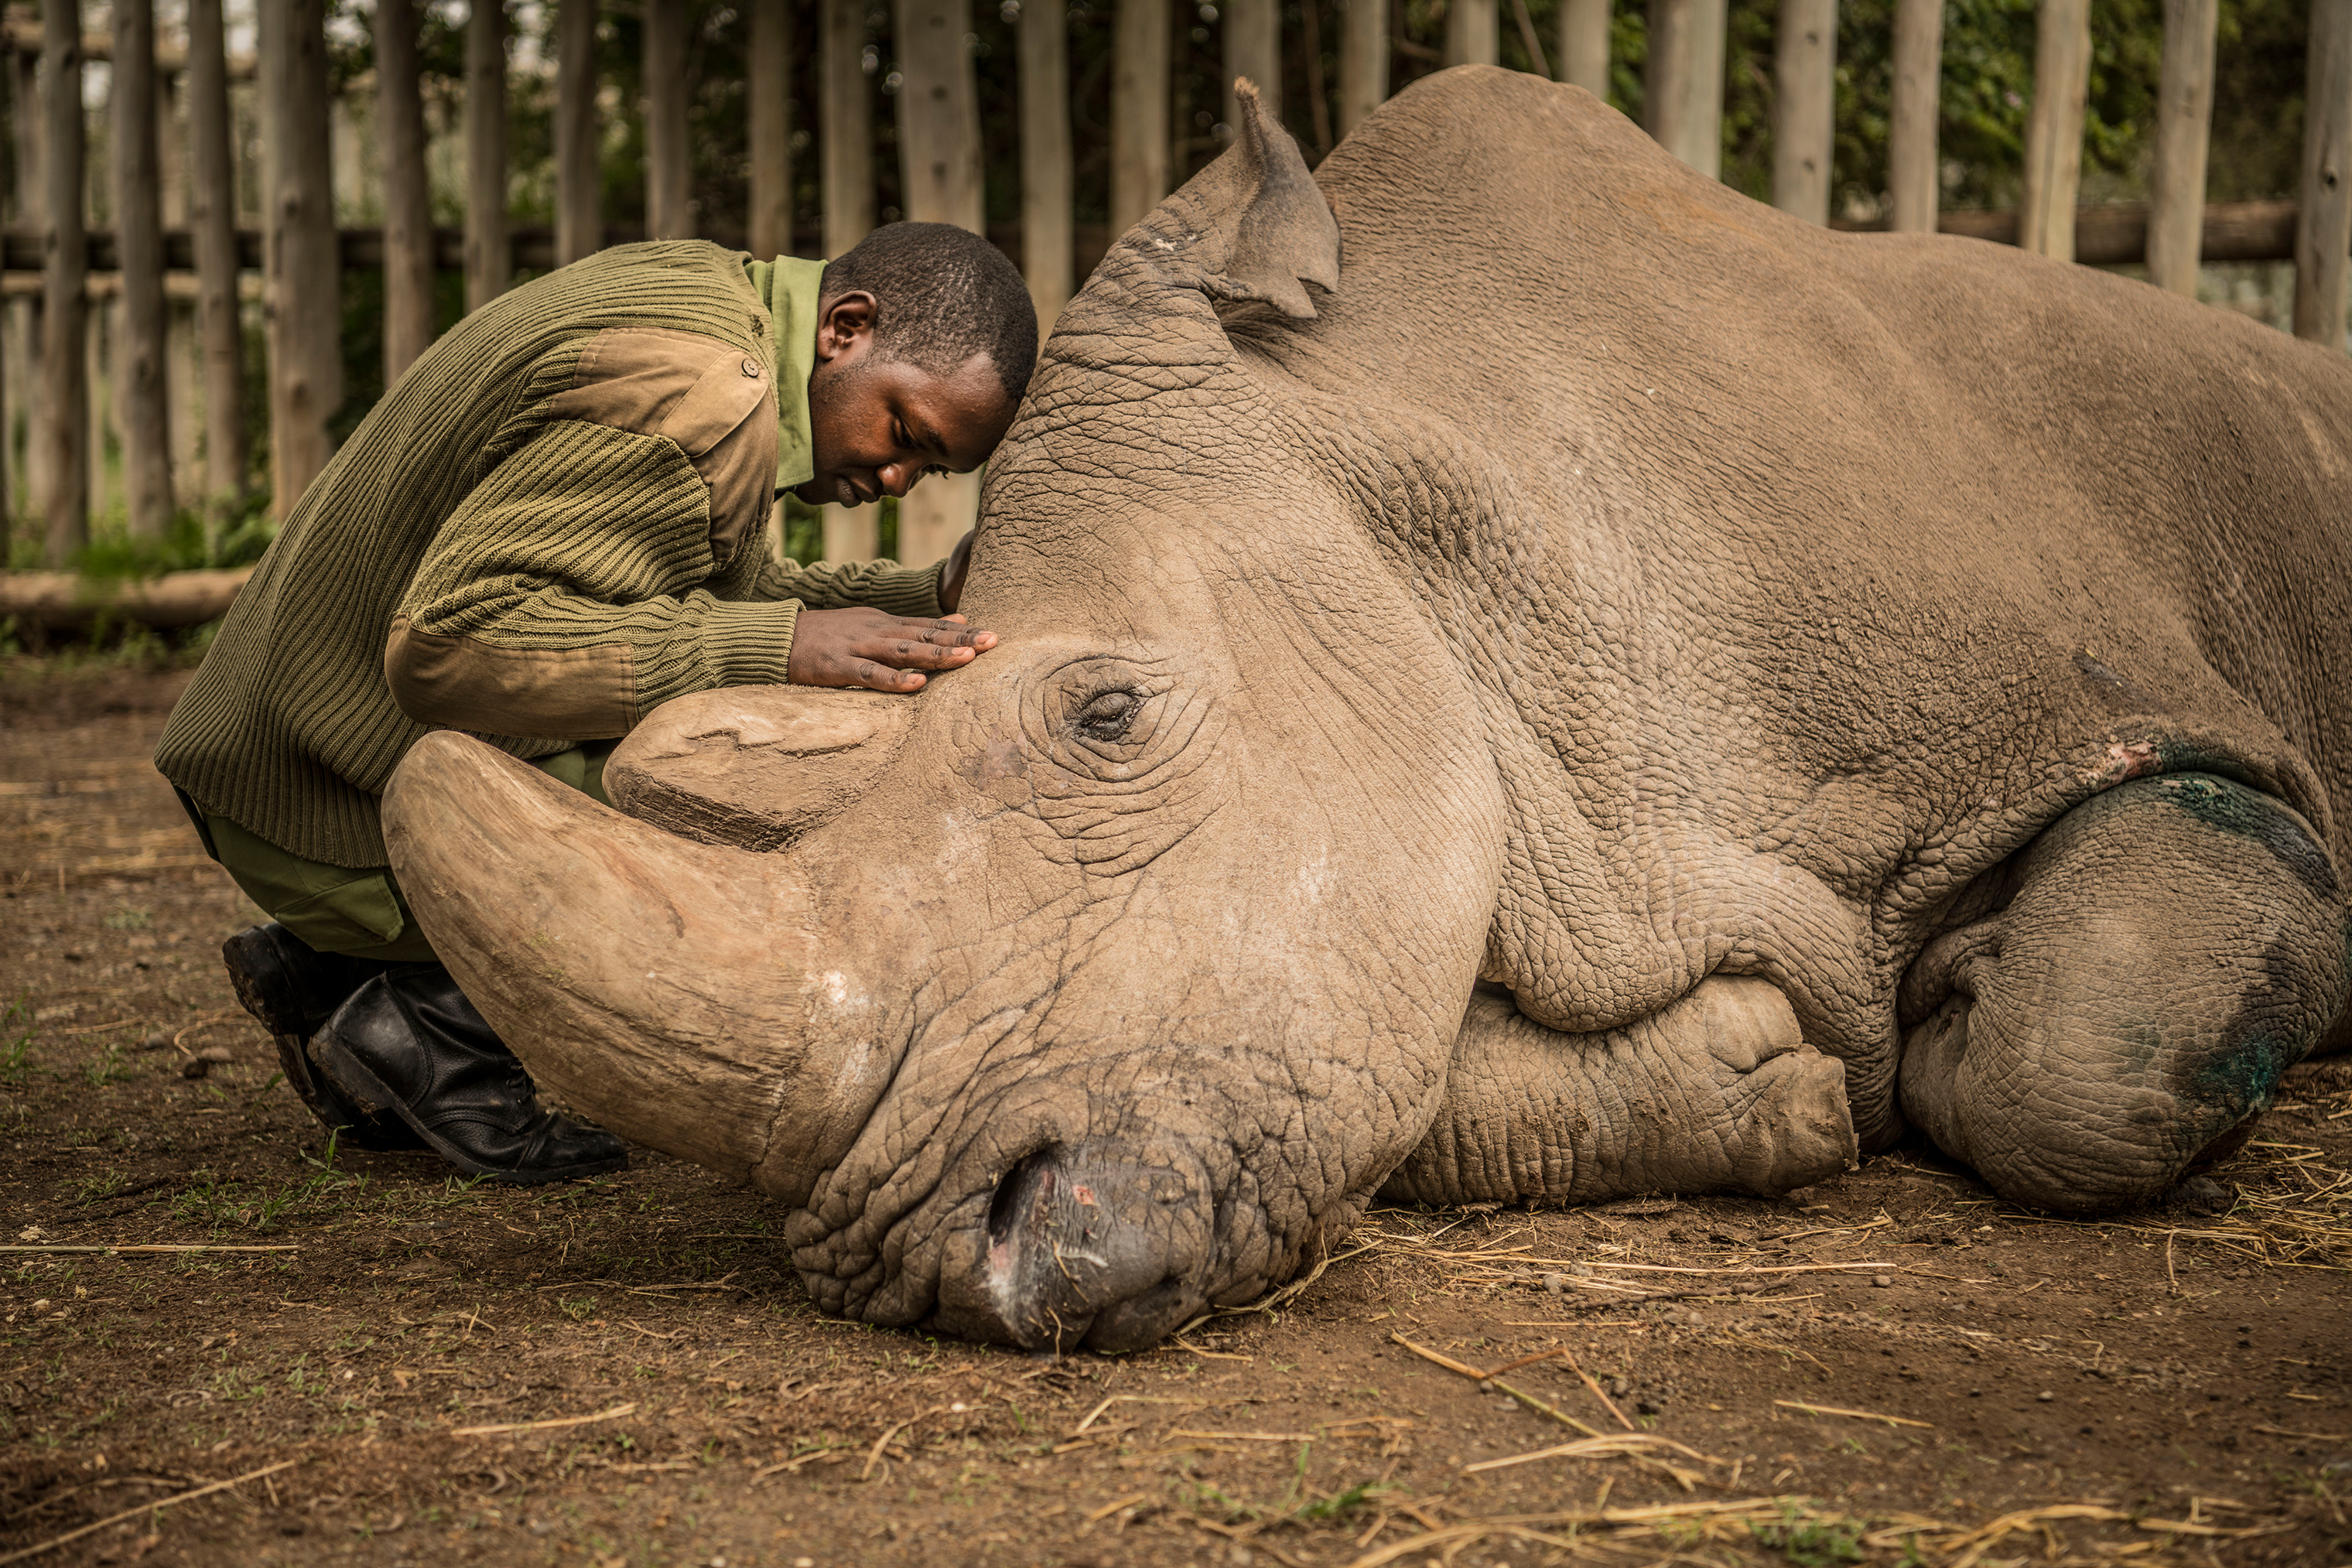 Joseph Wachira, 26, comforts Sudan, the last male Northern White Rhino on the planet, moments before he passed away in March.